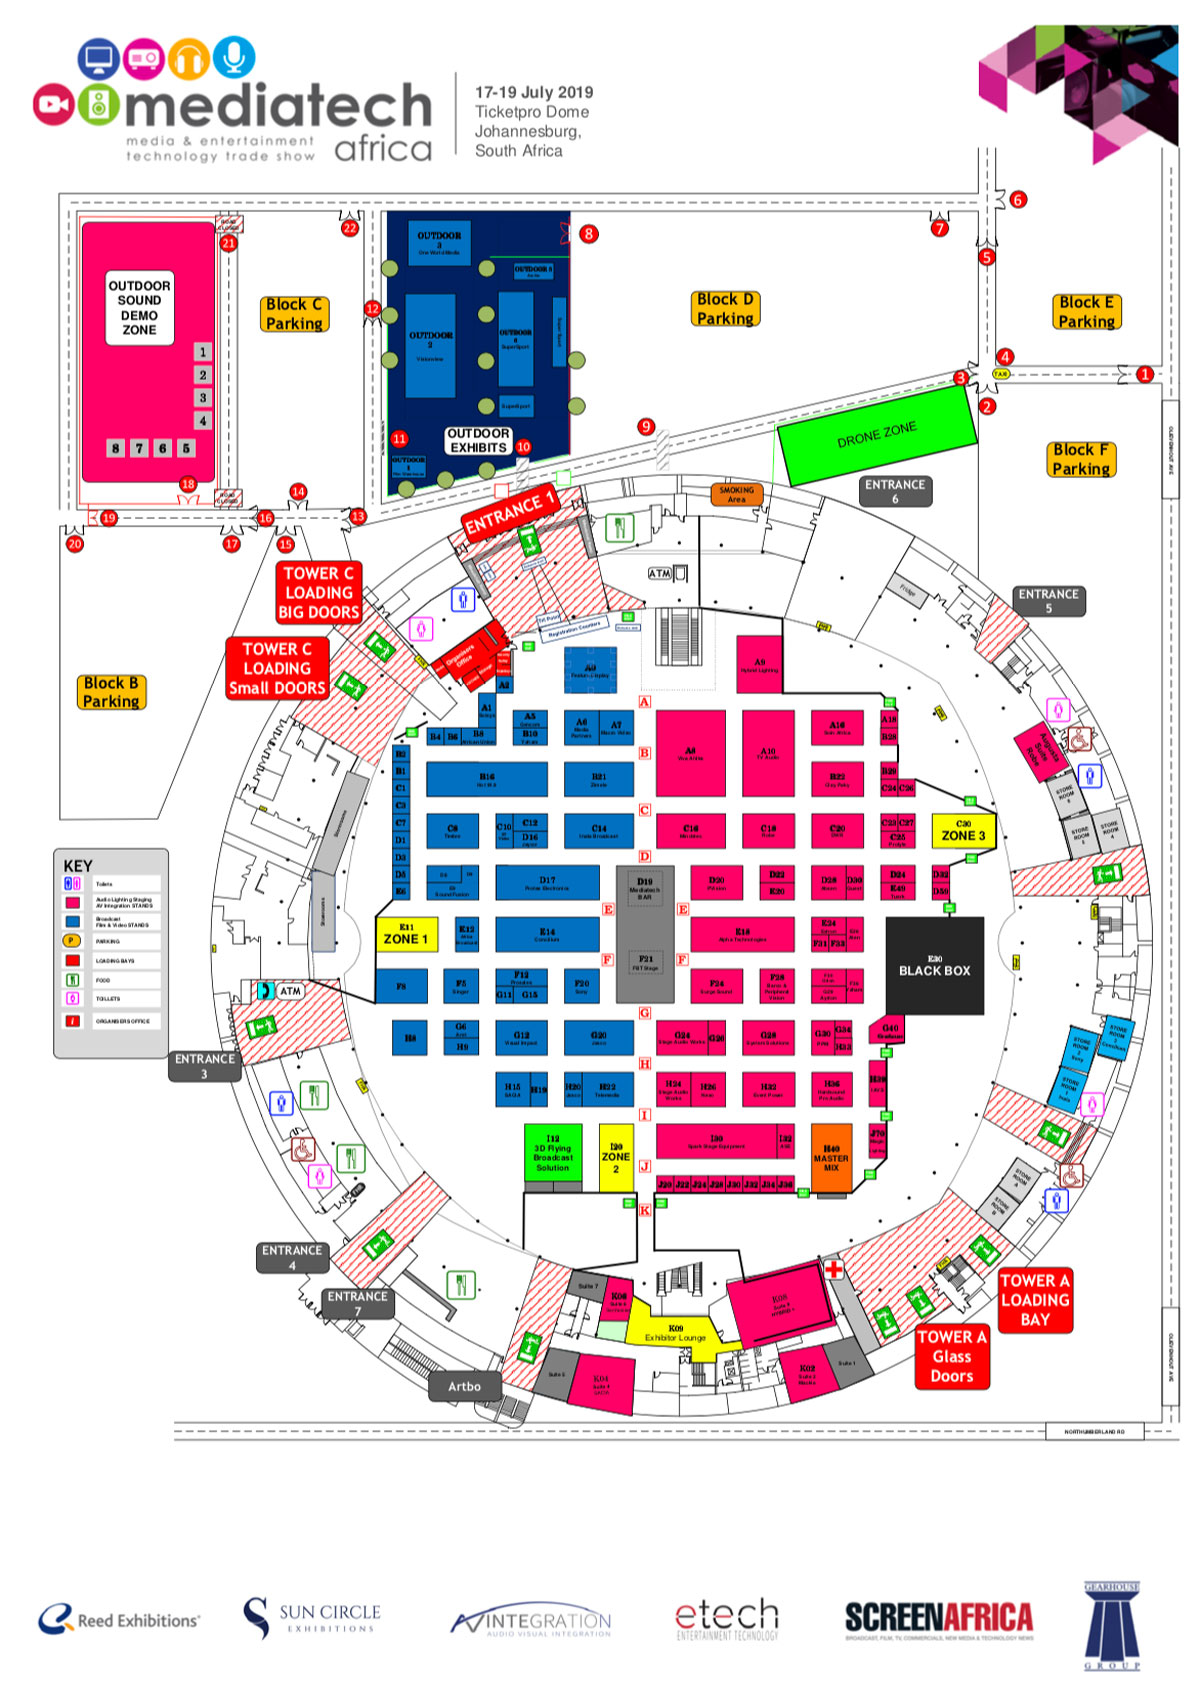 Mediatech 2019 - Floor Plan